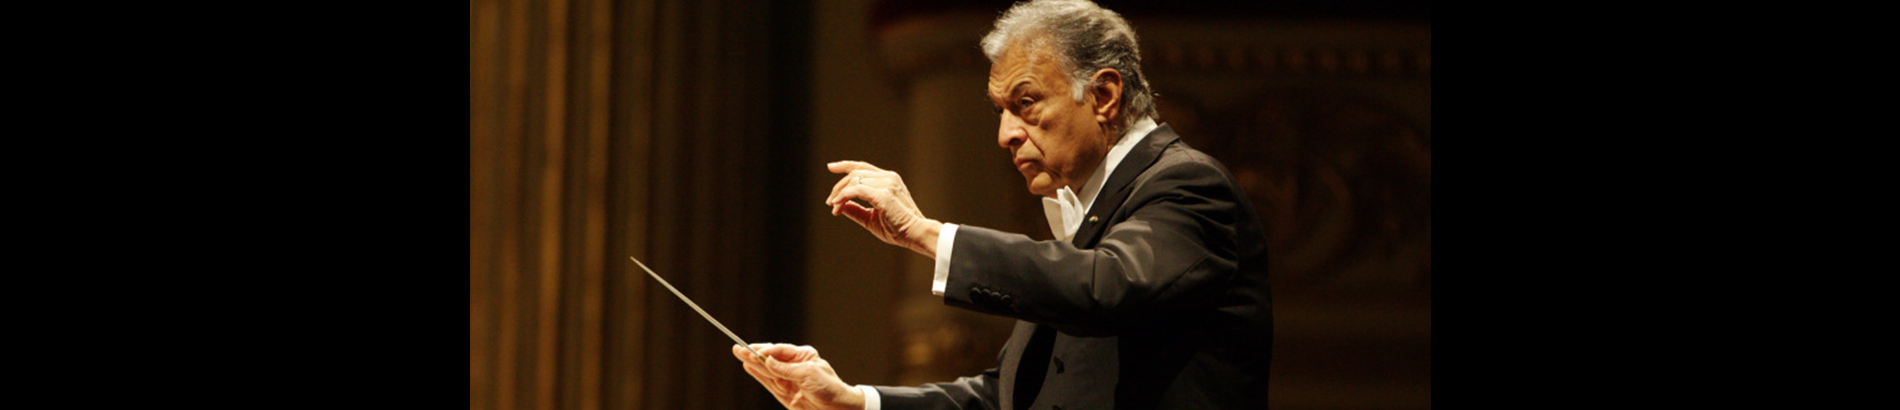 Zubin Mehta conducts Mozart – With Itzhak Perlman and Pinchas Zukerman